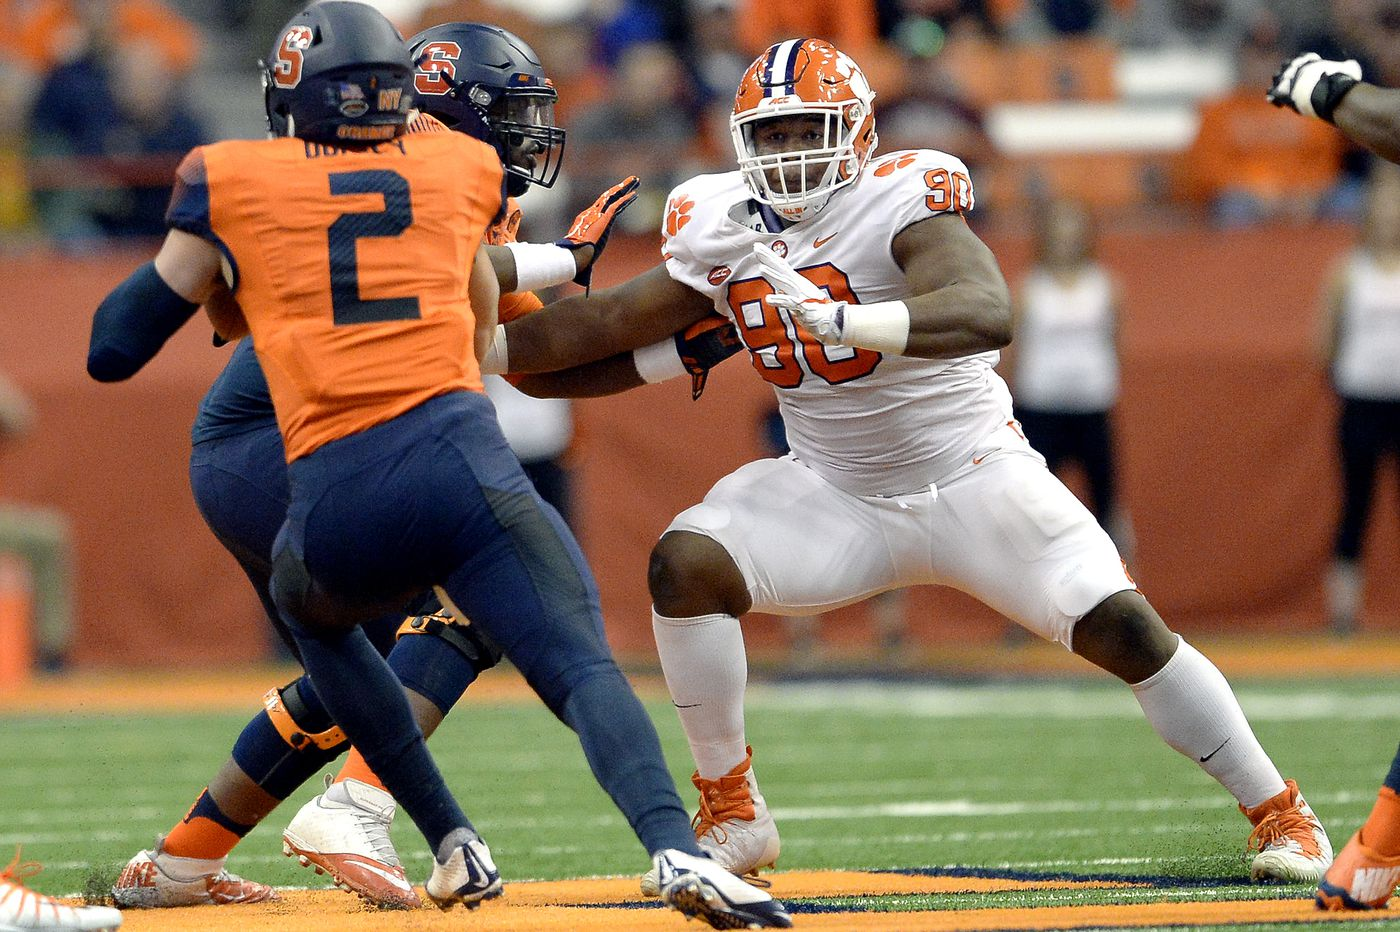 NFL draft betting: Yep, you can even wager on whether the Eagles take Dexter Lawrence in the first round ... but you have to be in Jersey